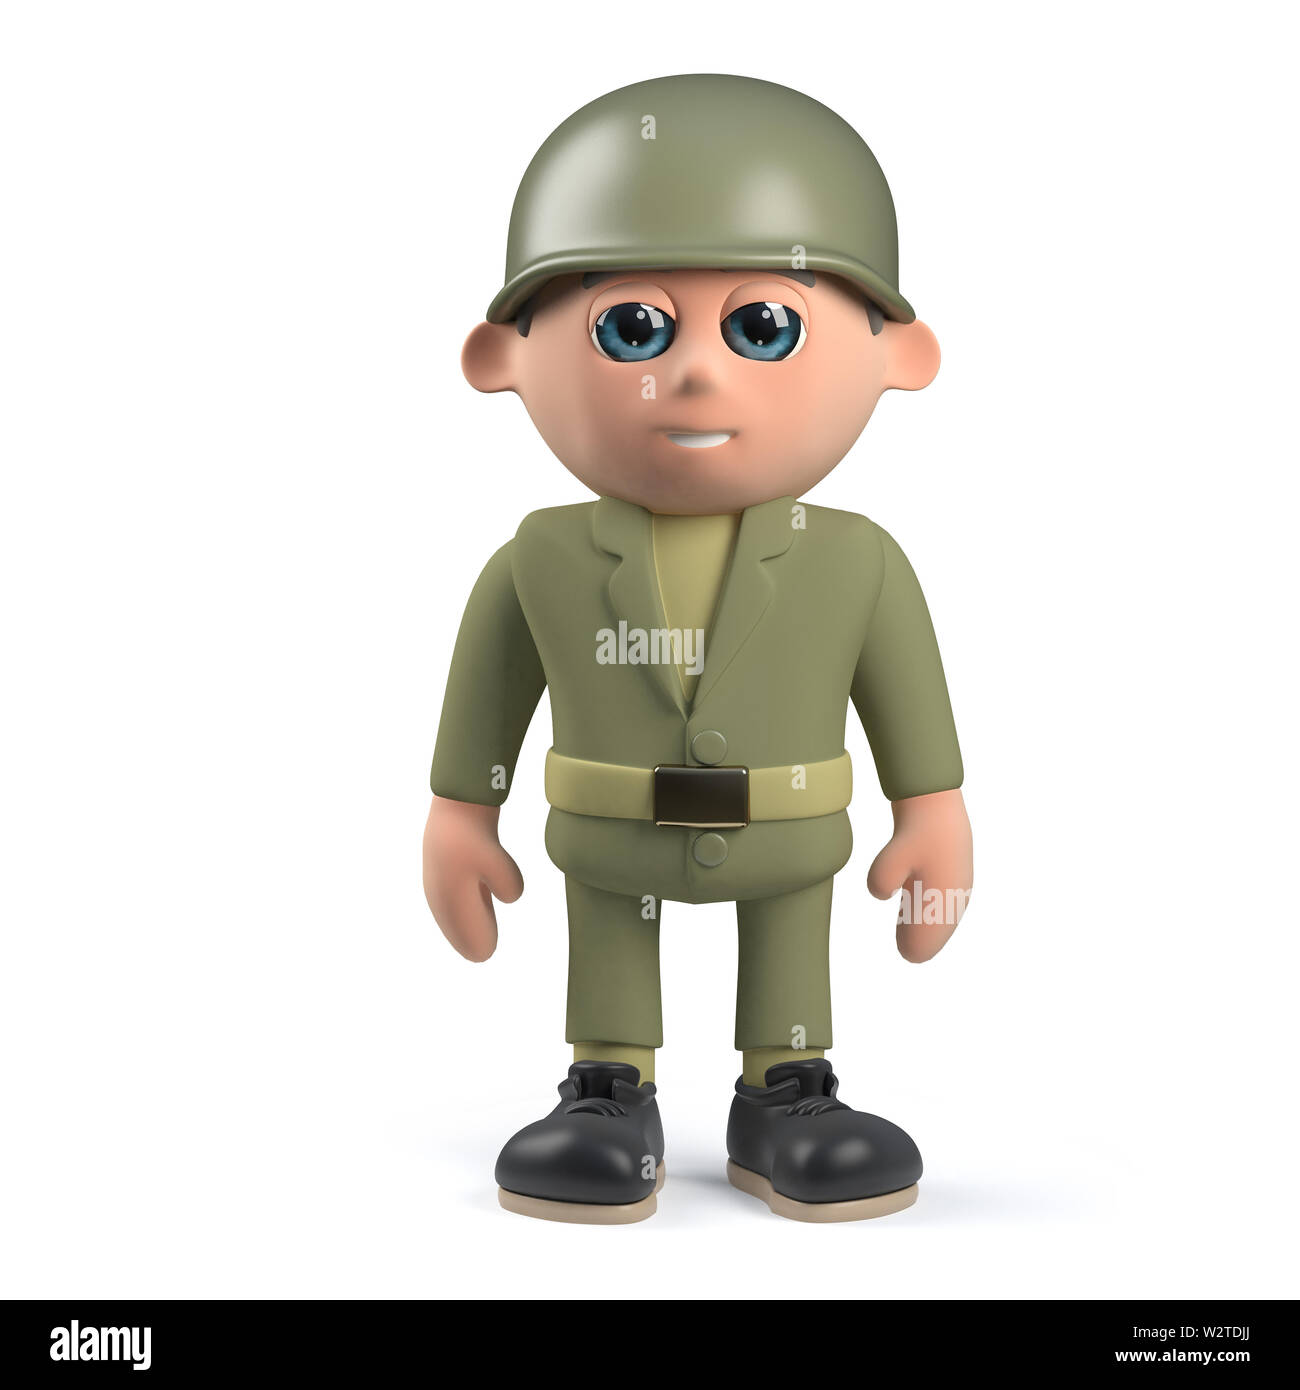 Render of a 3d Army soldier standing to attention - Stock Image